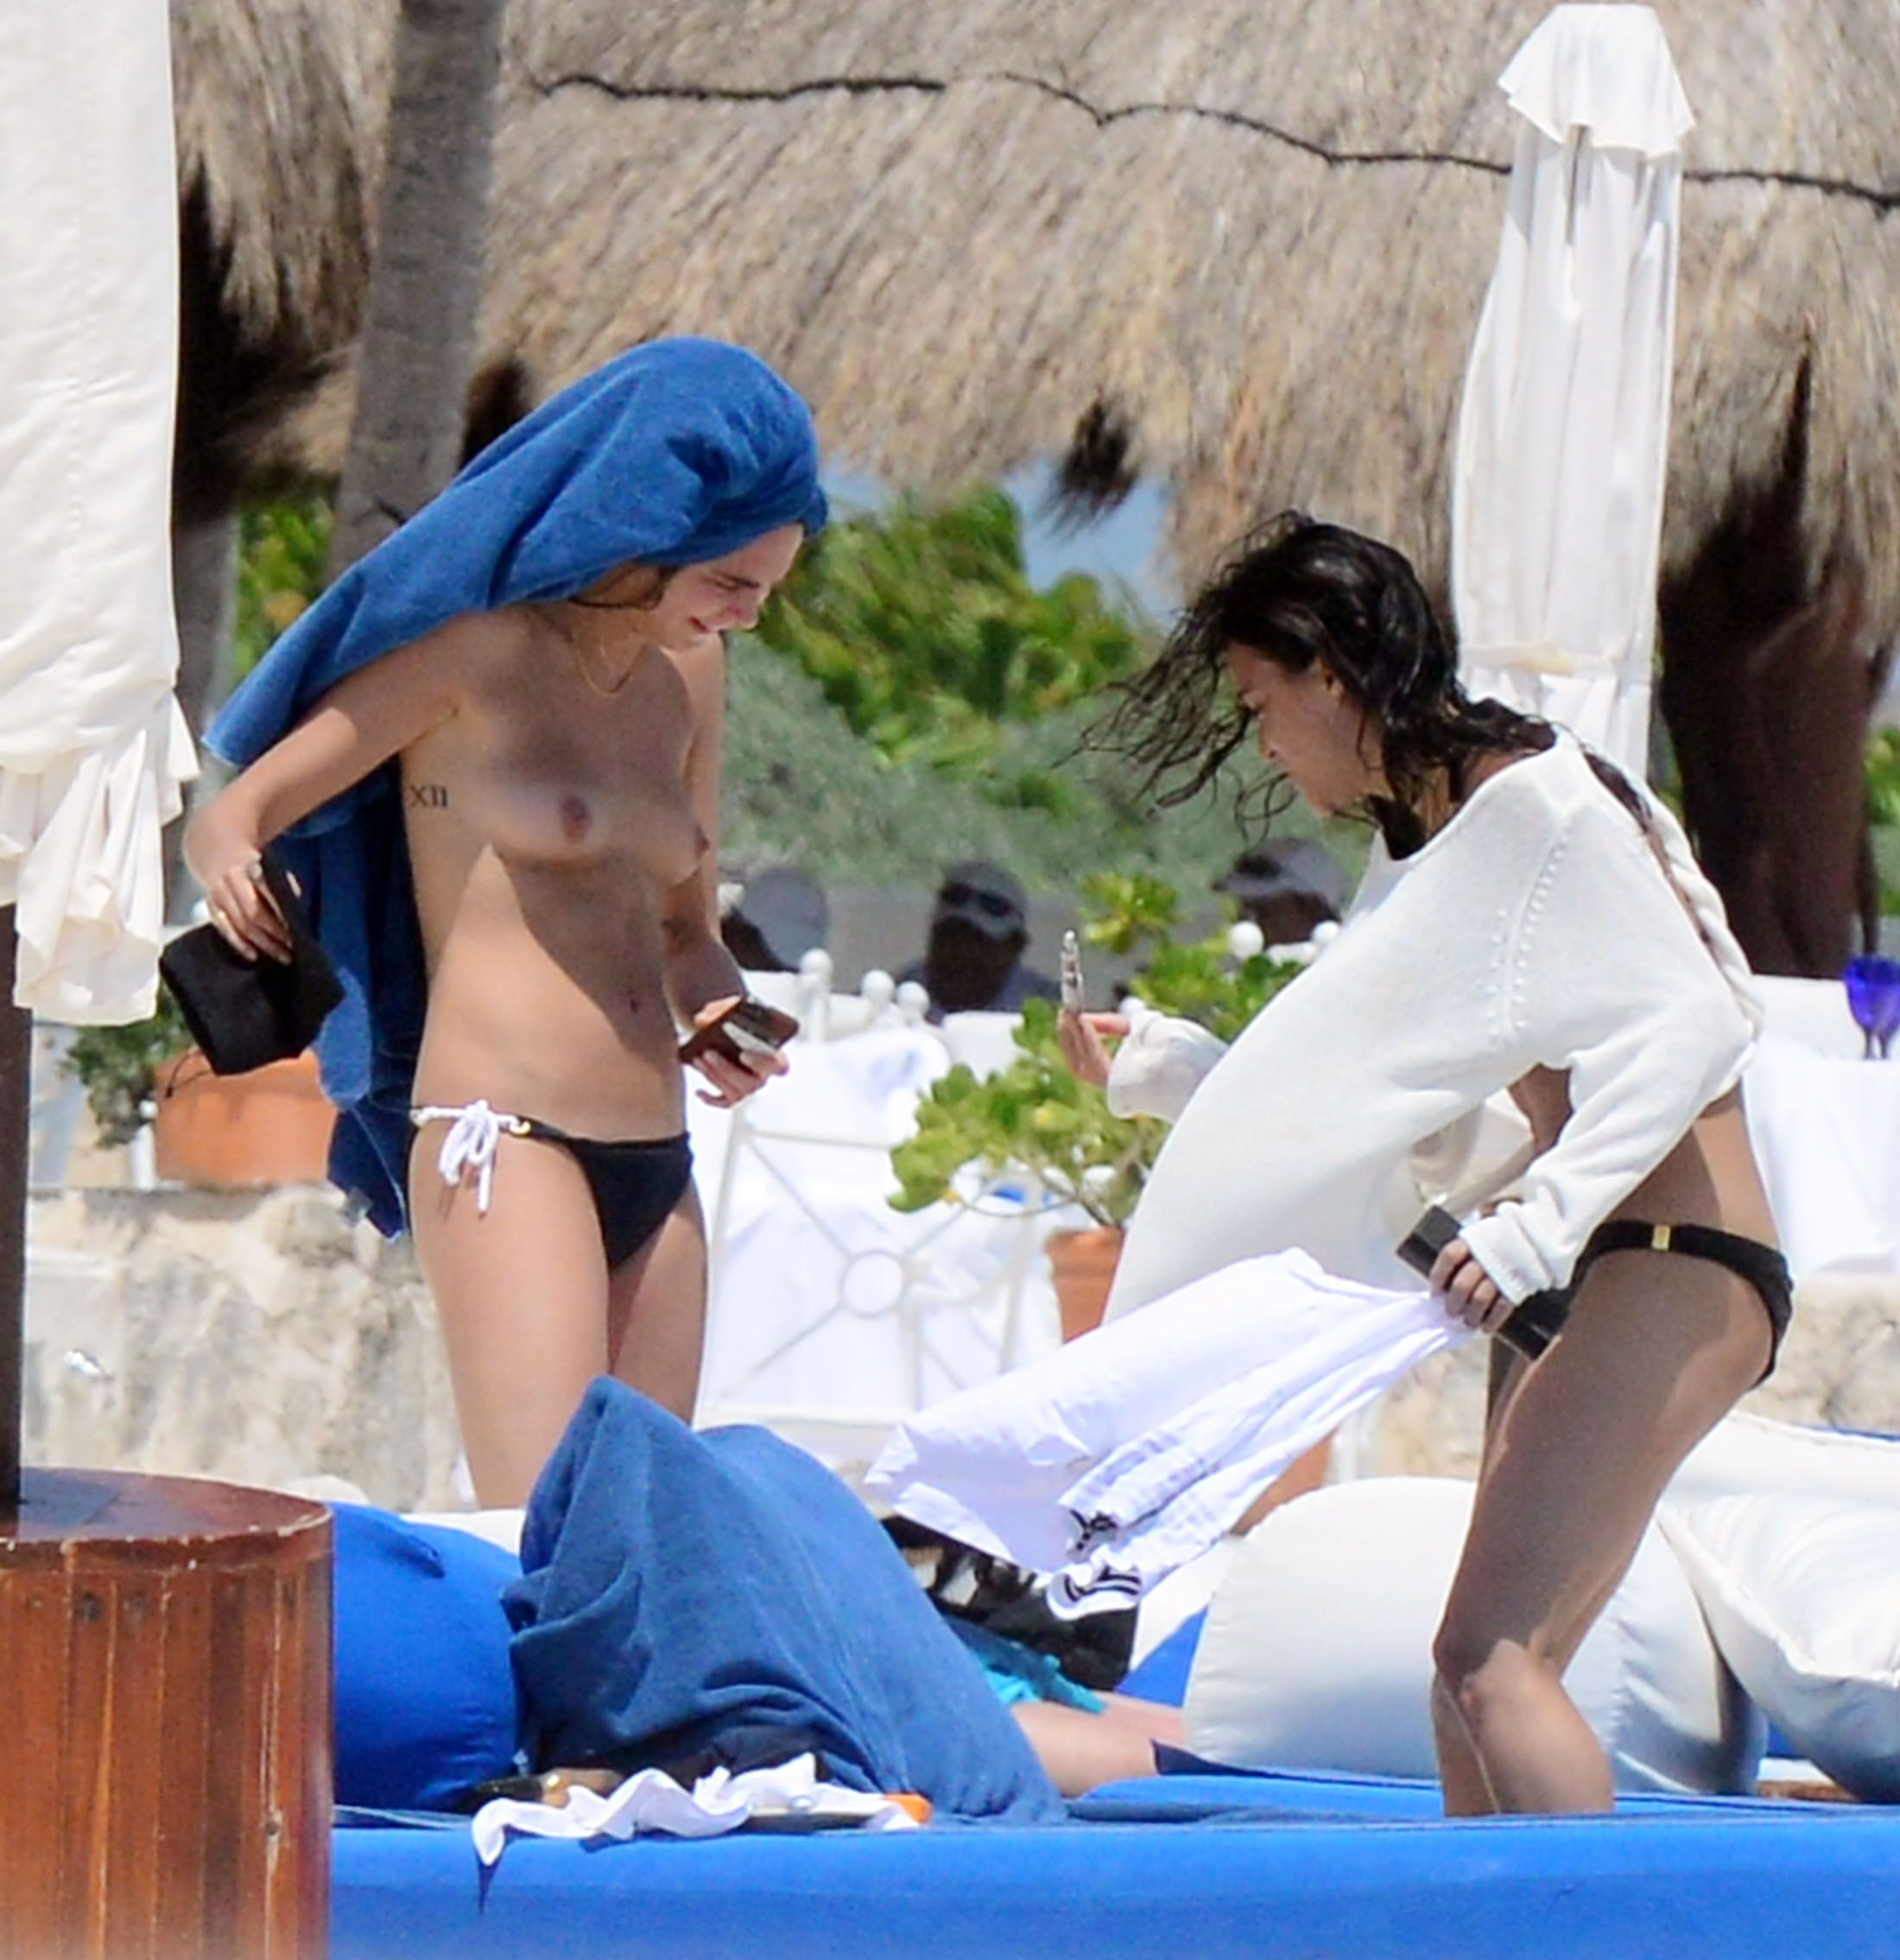 Michelle Rodriguez And Cara Delevingne Topless 8